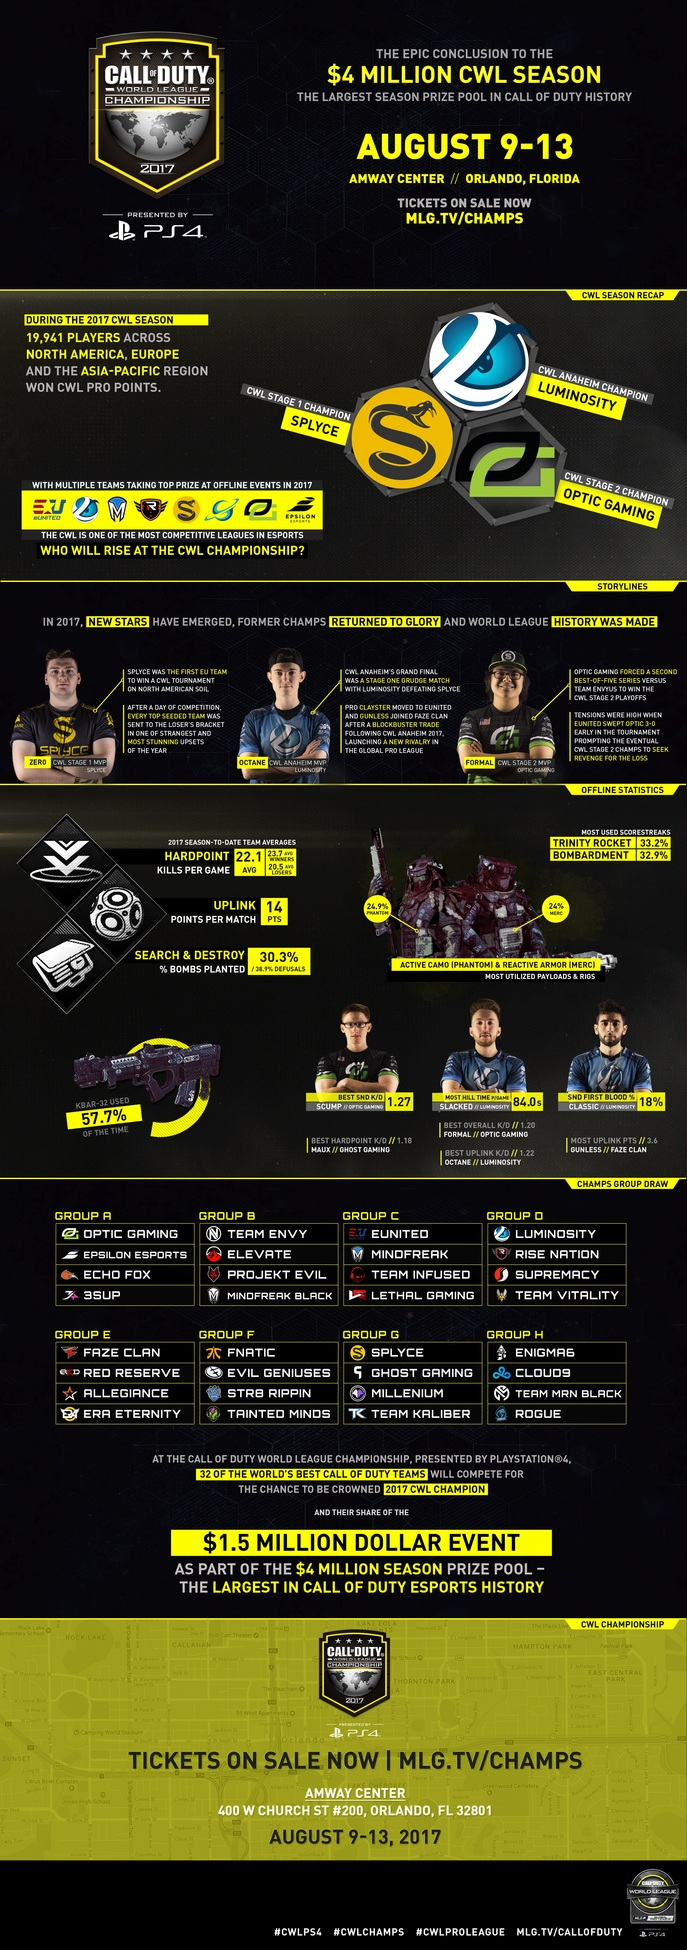 CWL Champs 2017 Infographic.jpg